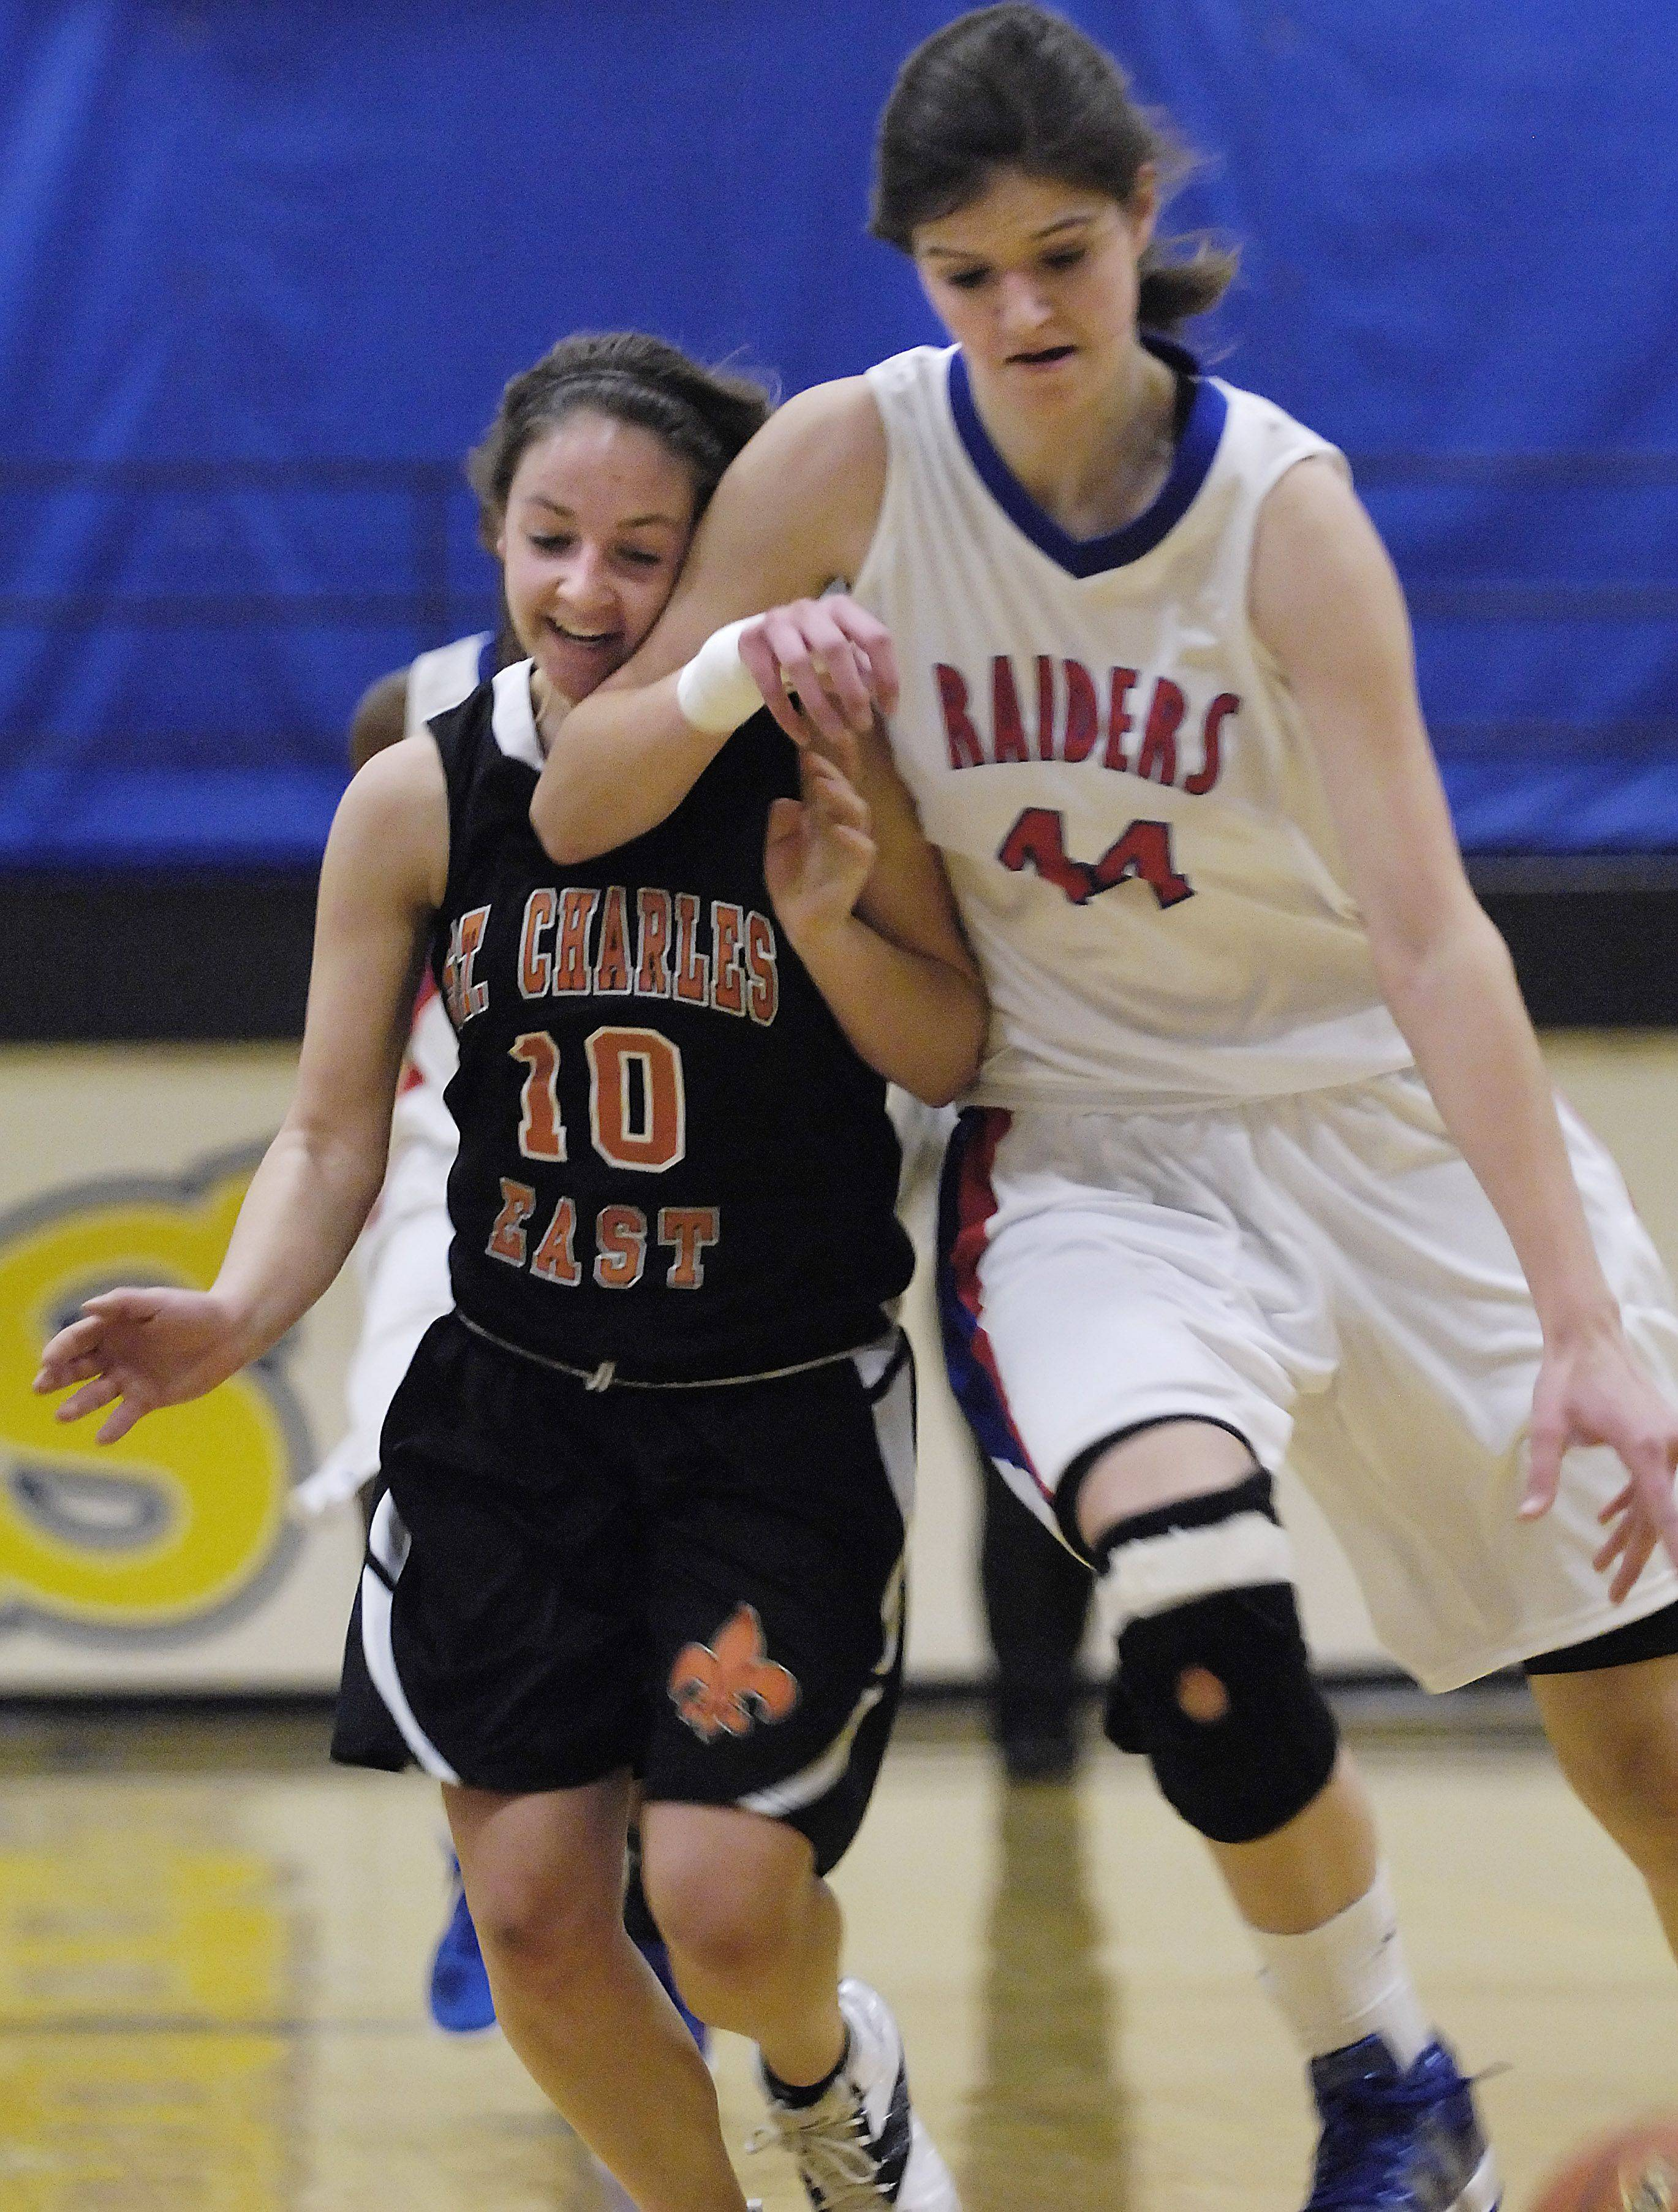 Glenbard South's Nevena Markovic drives against St. Charles East's Annie Martines.